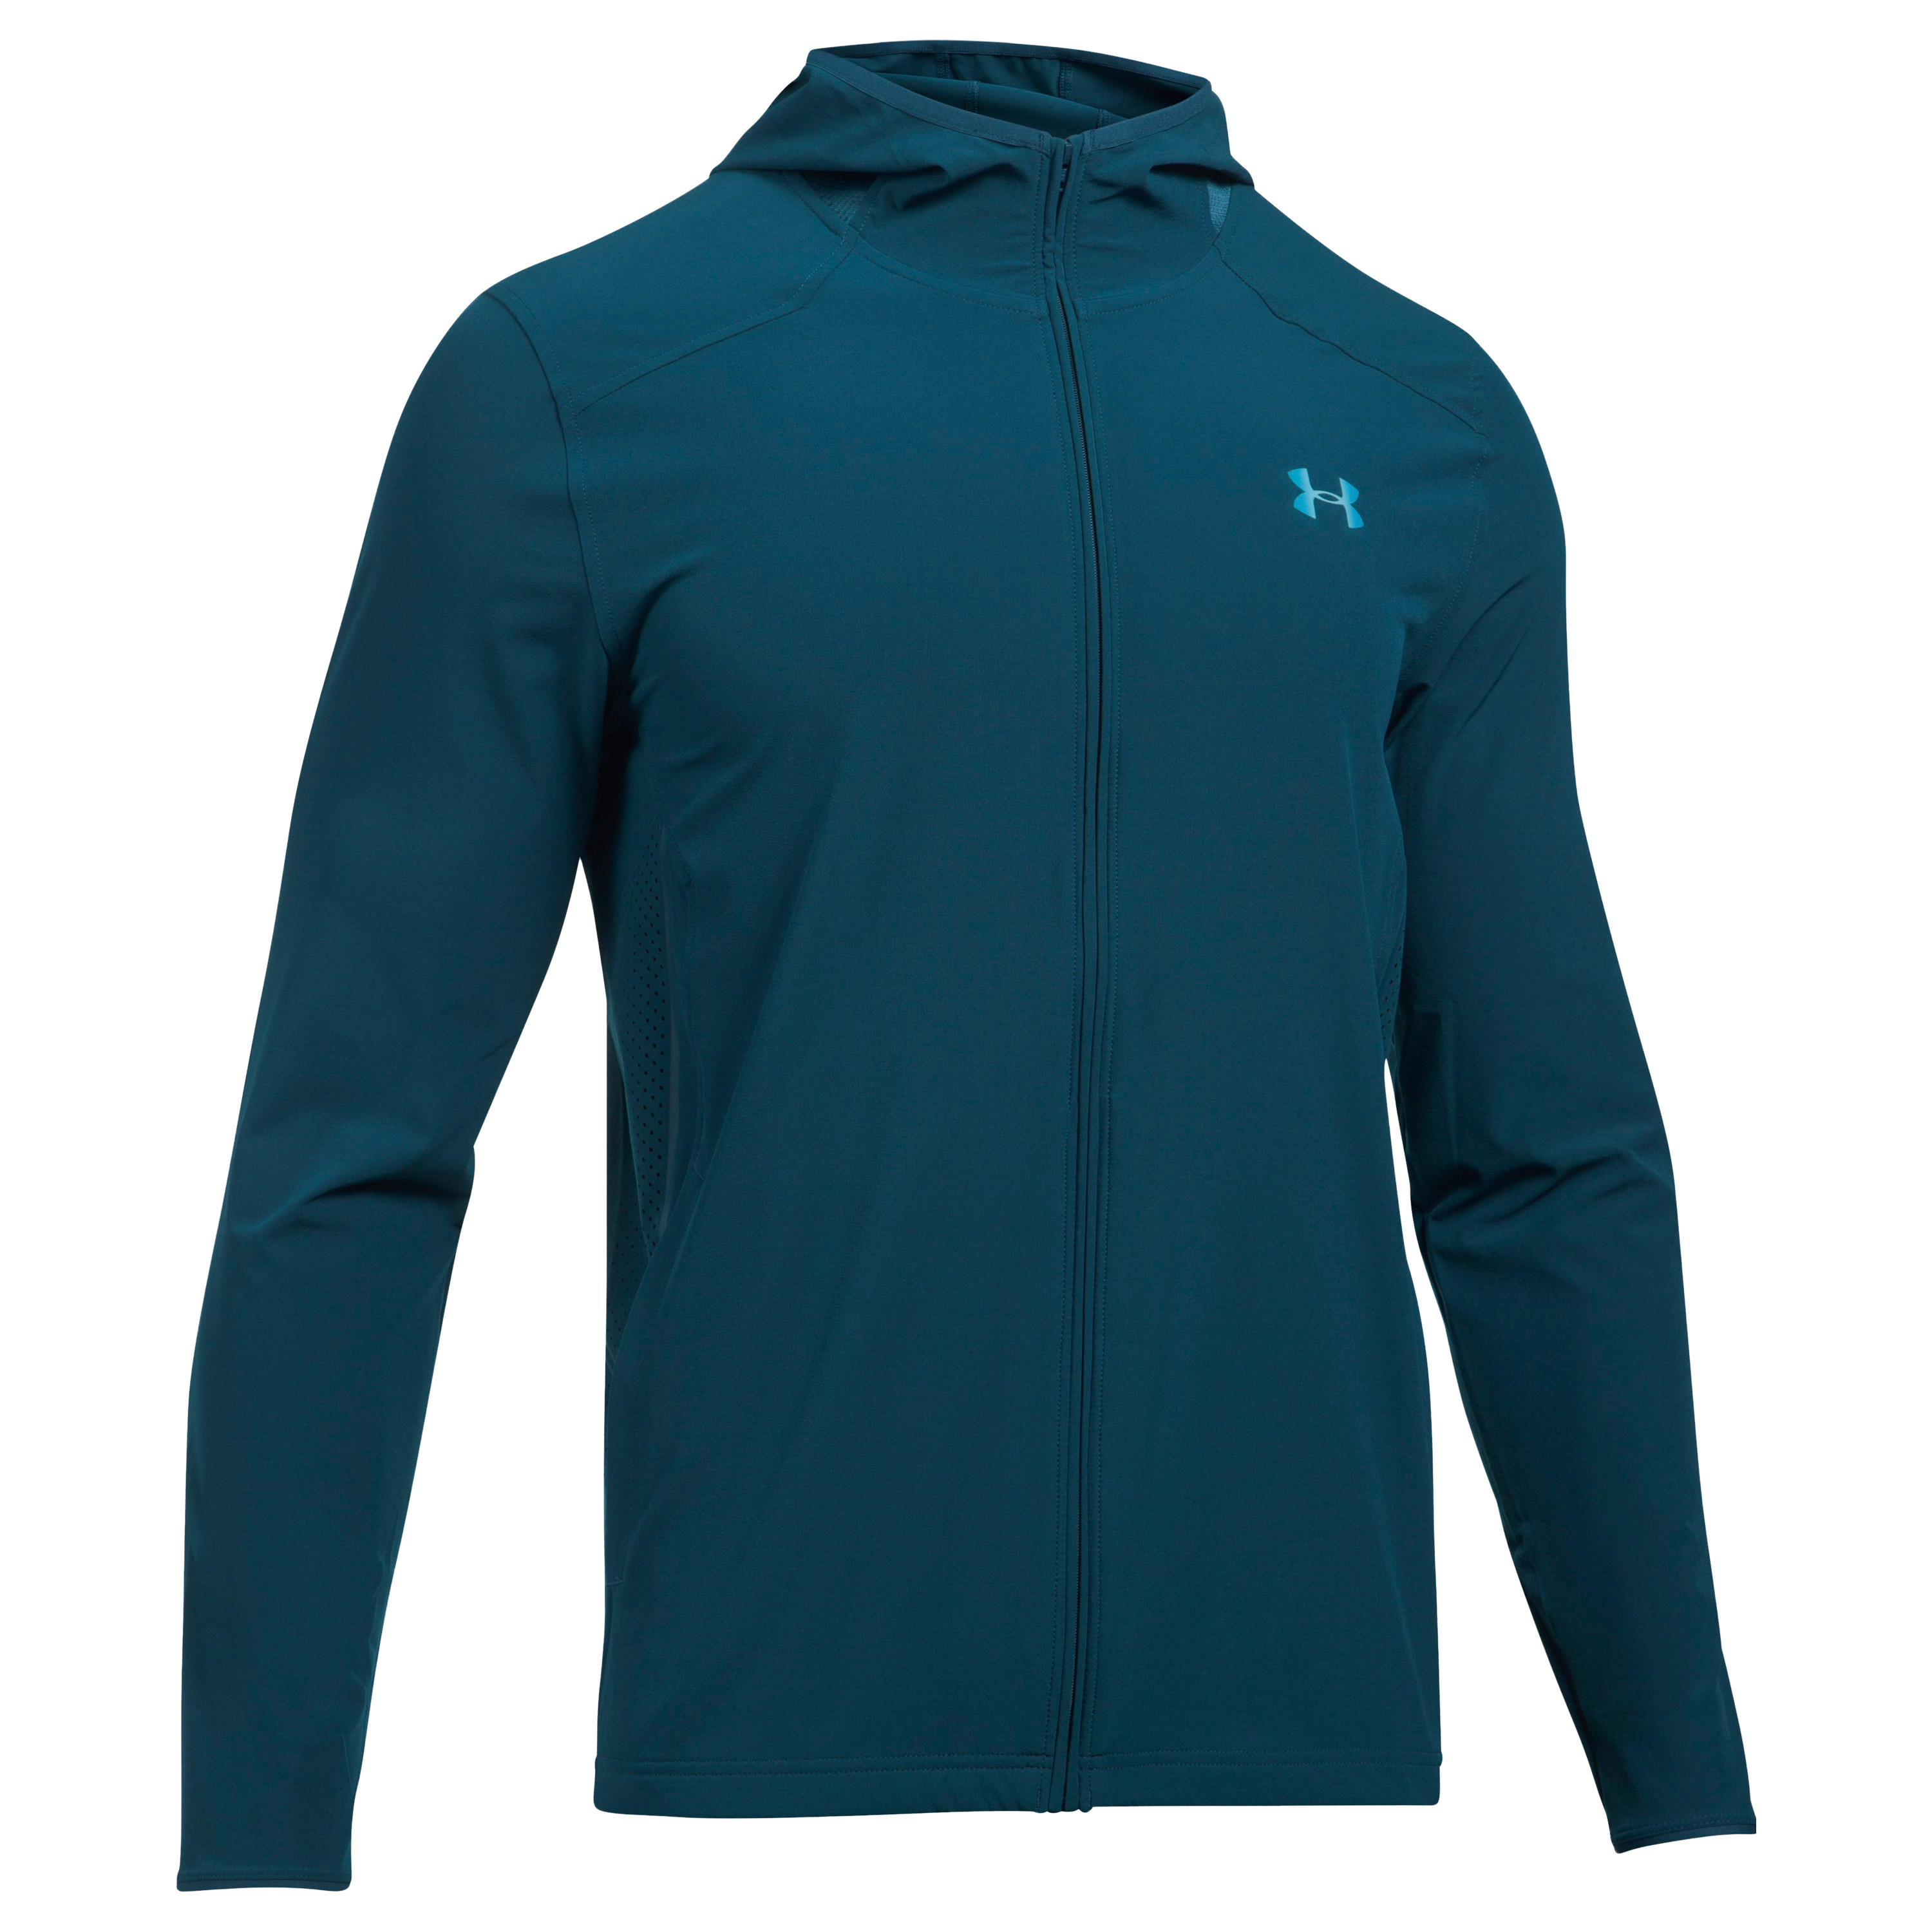 Under Armour Hoodie Storm Vortex blue